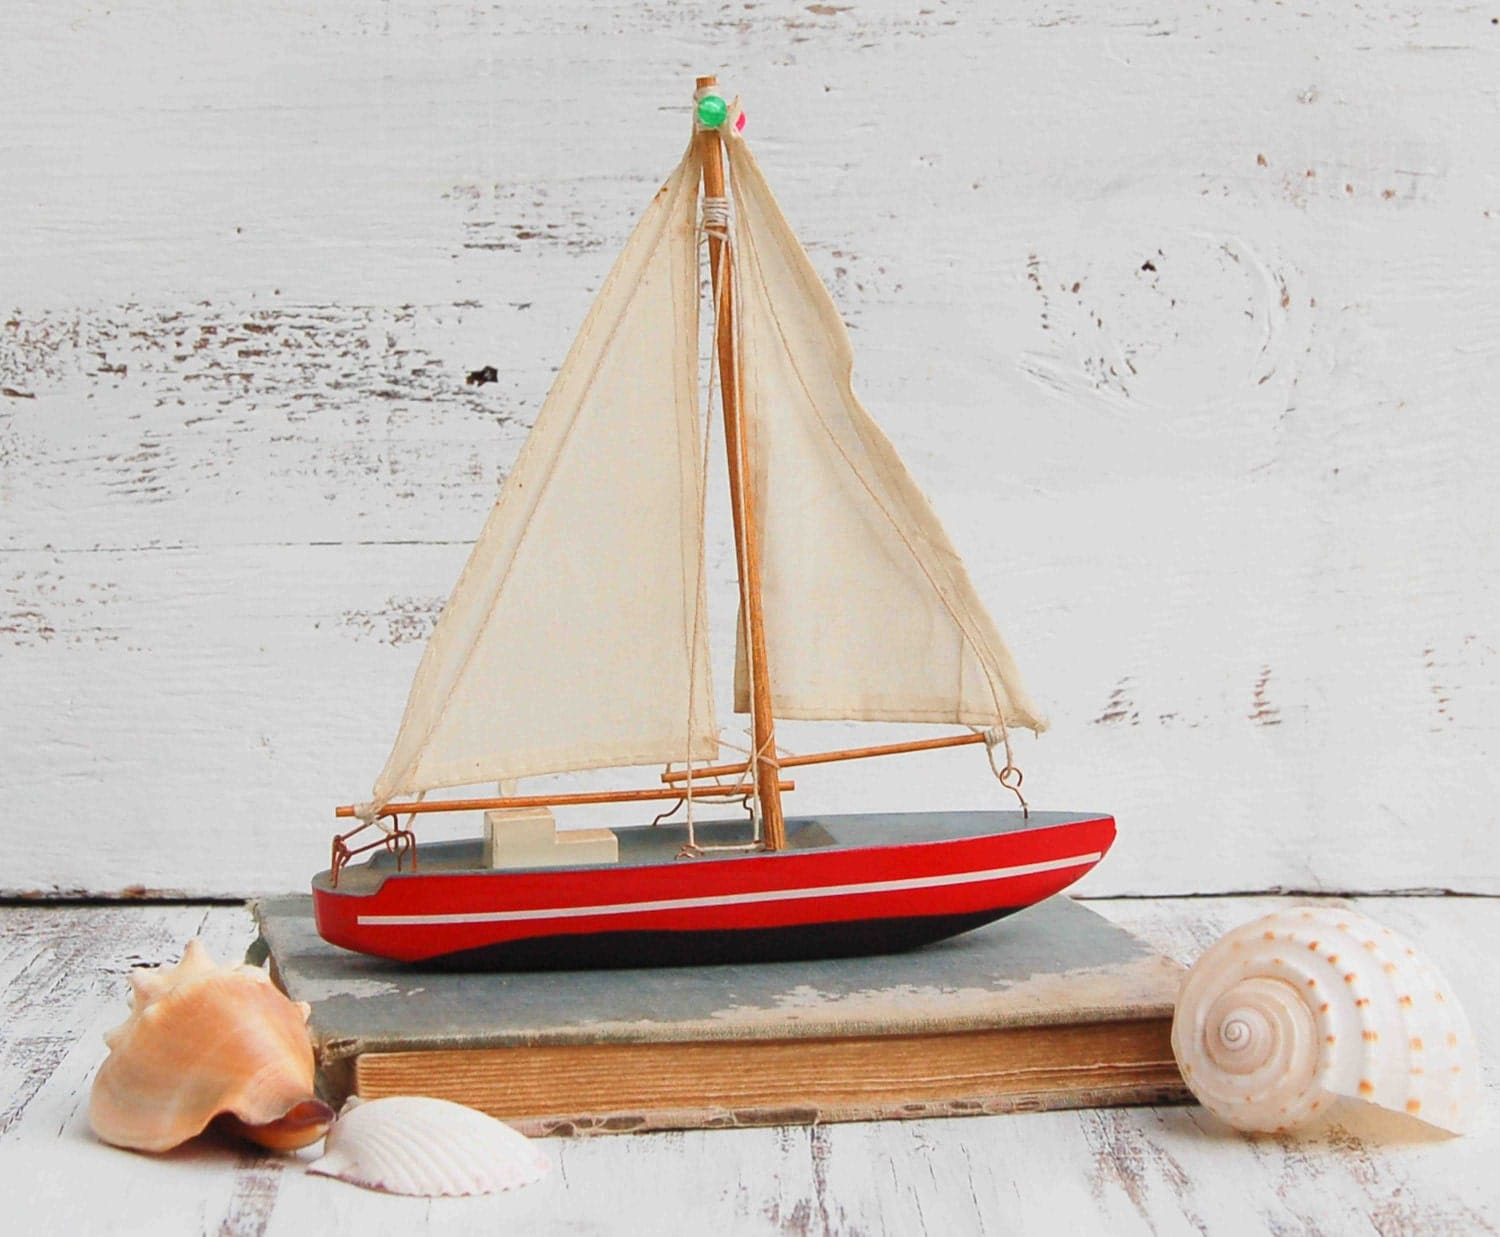 Free Wooden Toy Sailboat Plans Wooden Toy Boat Plans